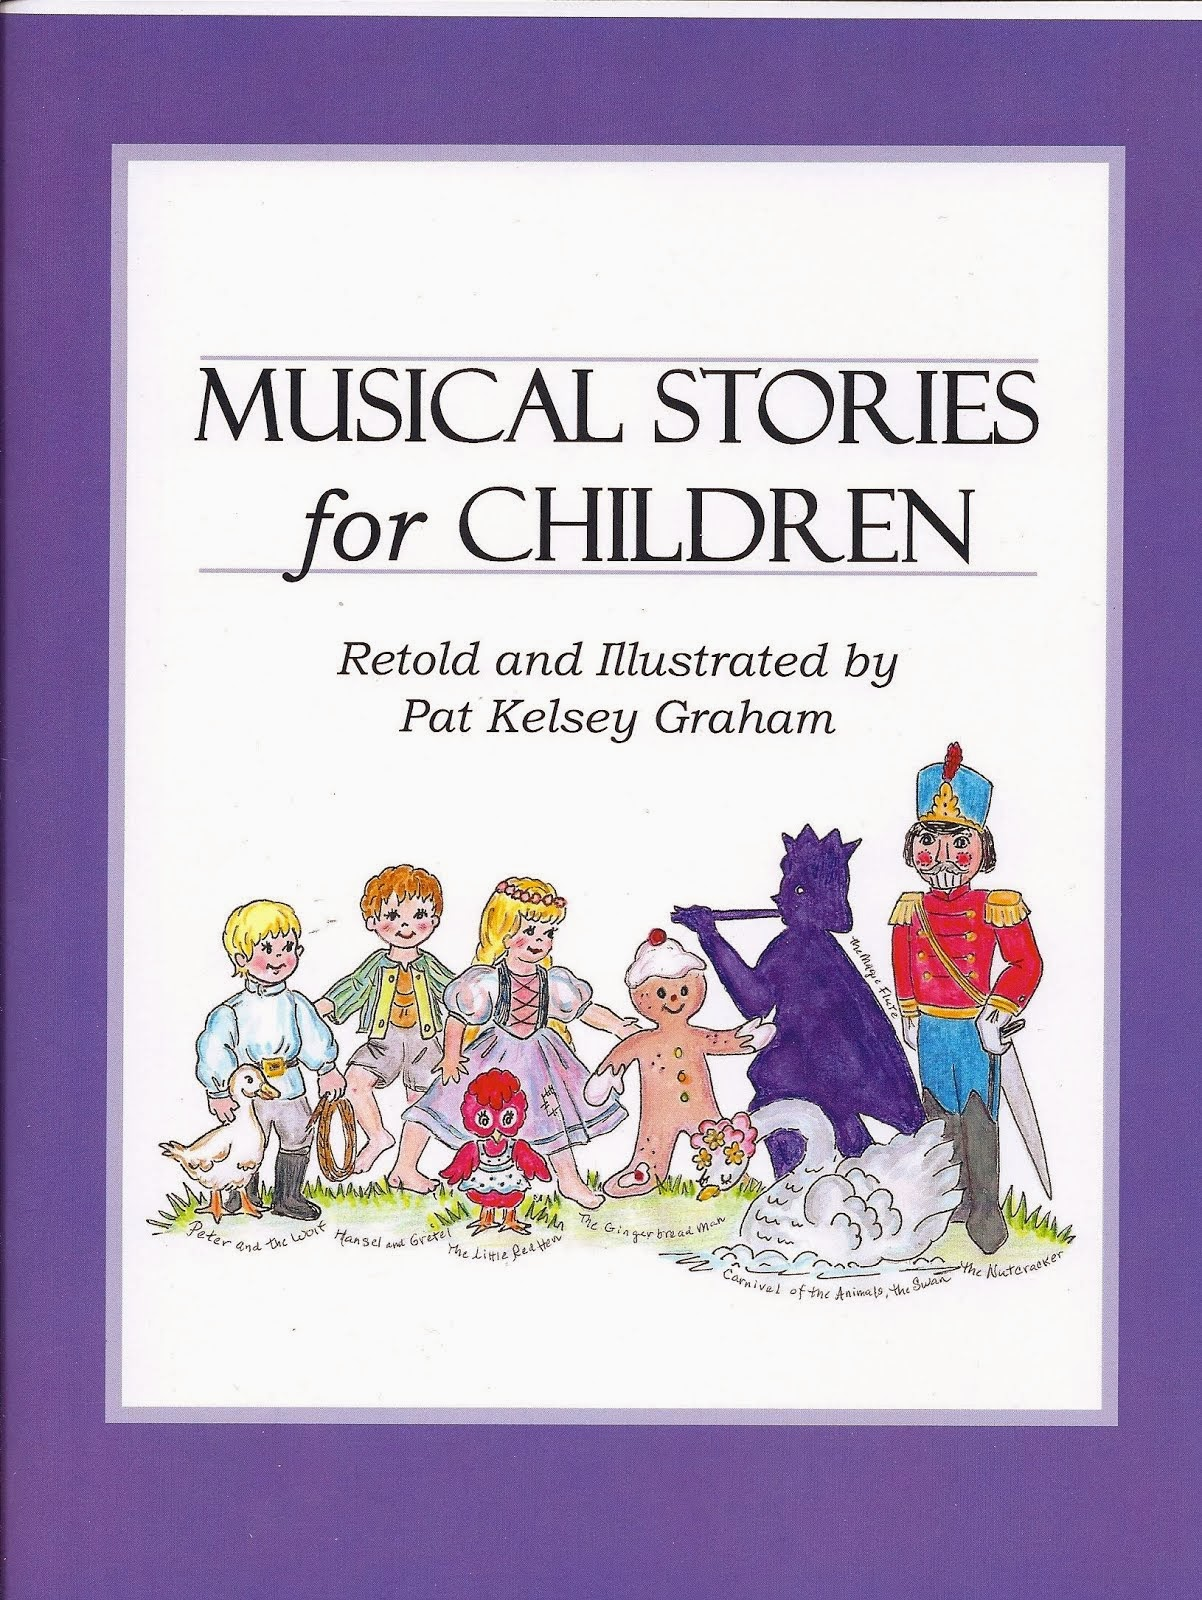 MUSICAL STORIES FOR CHILDREN